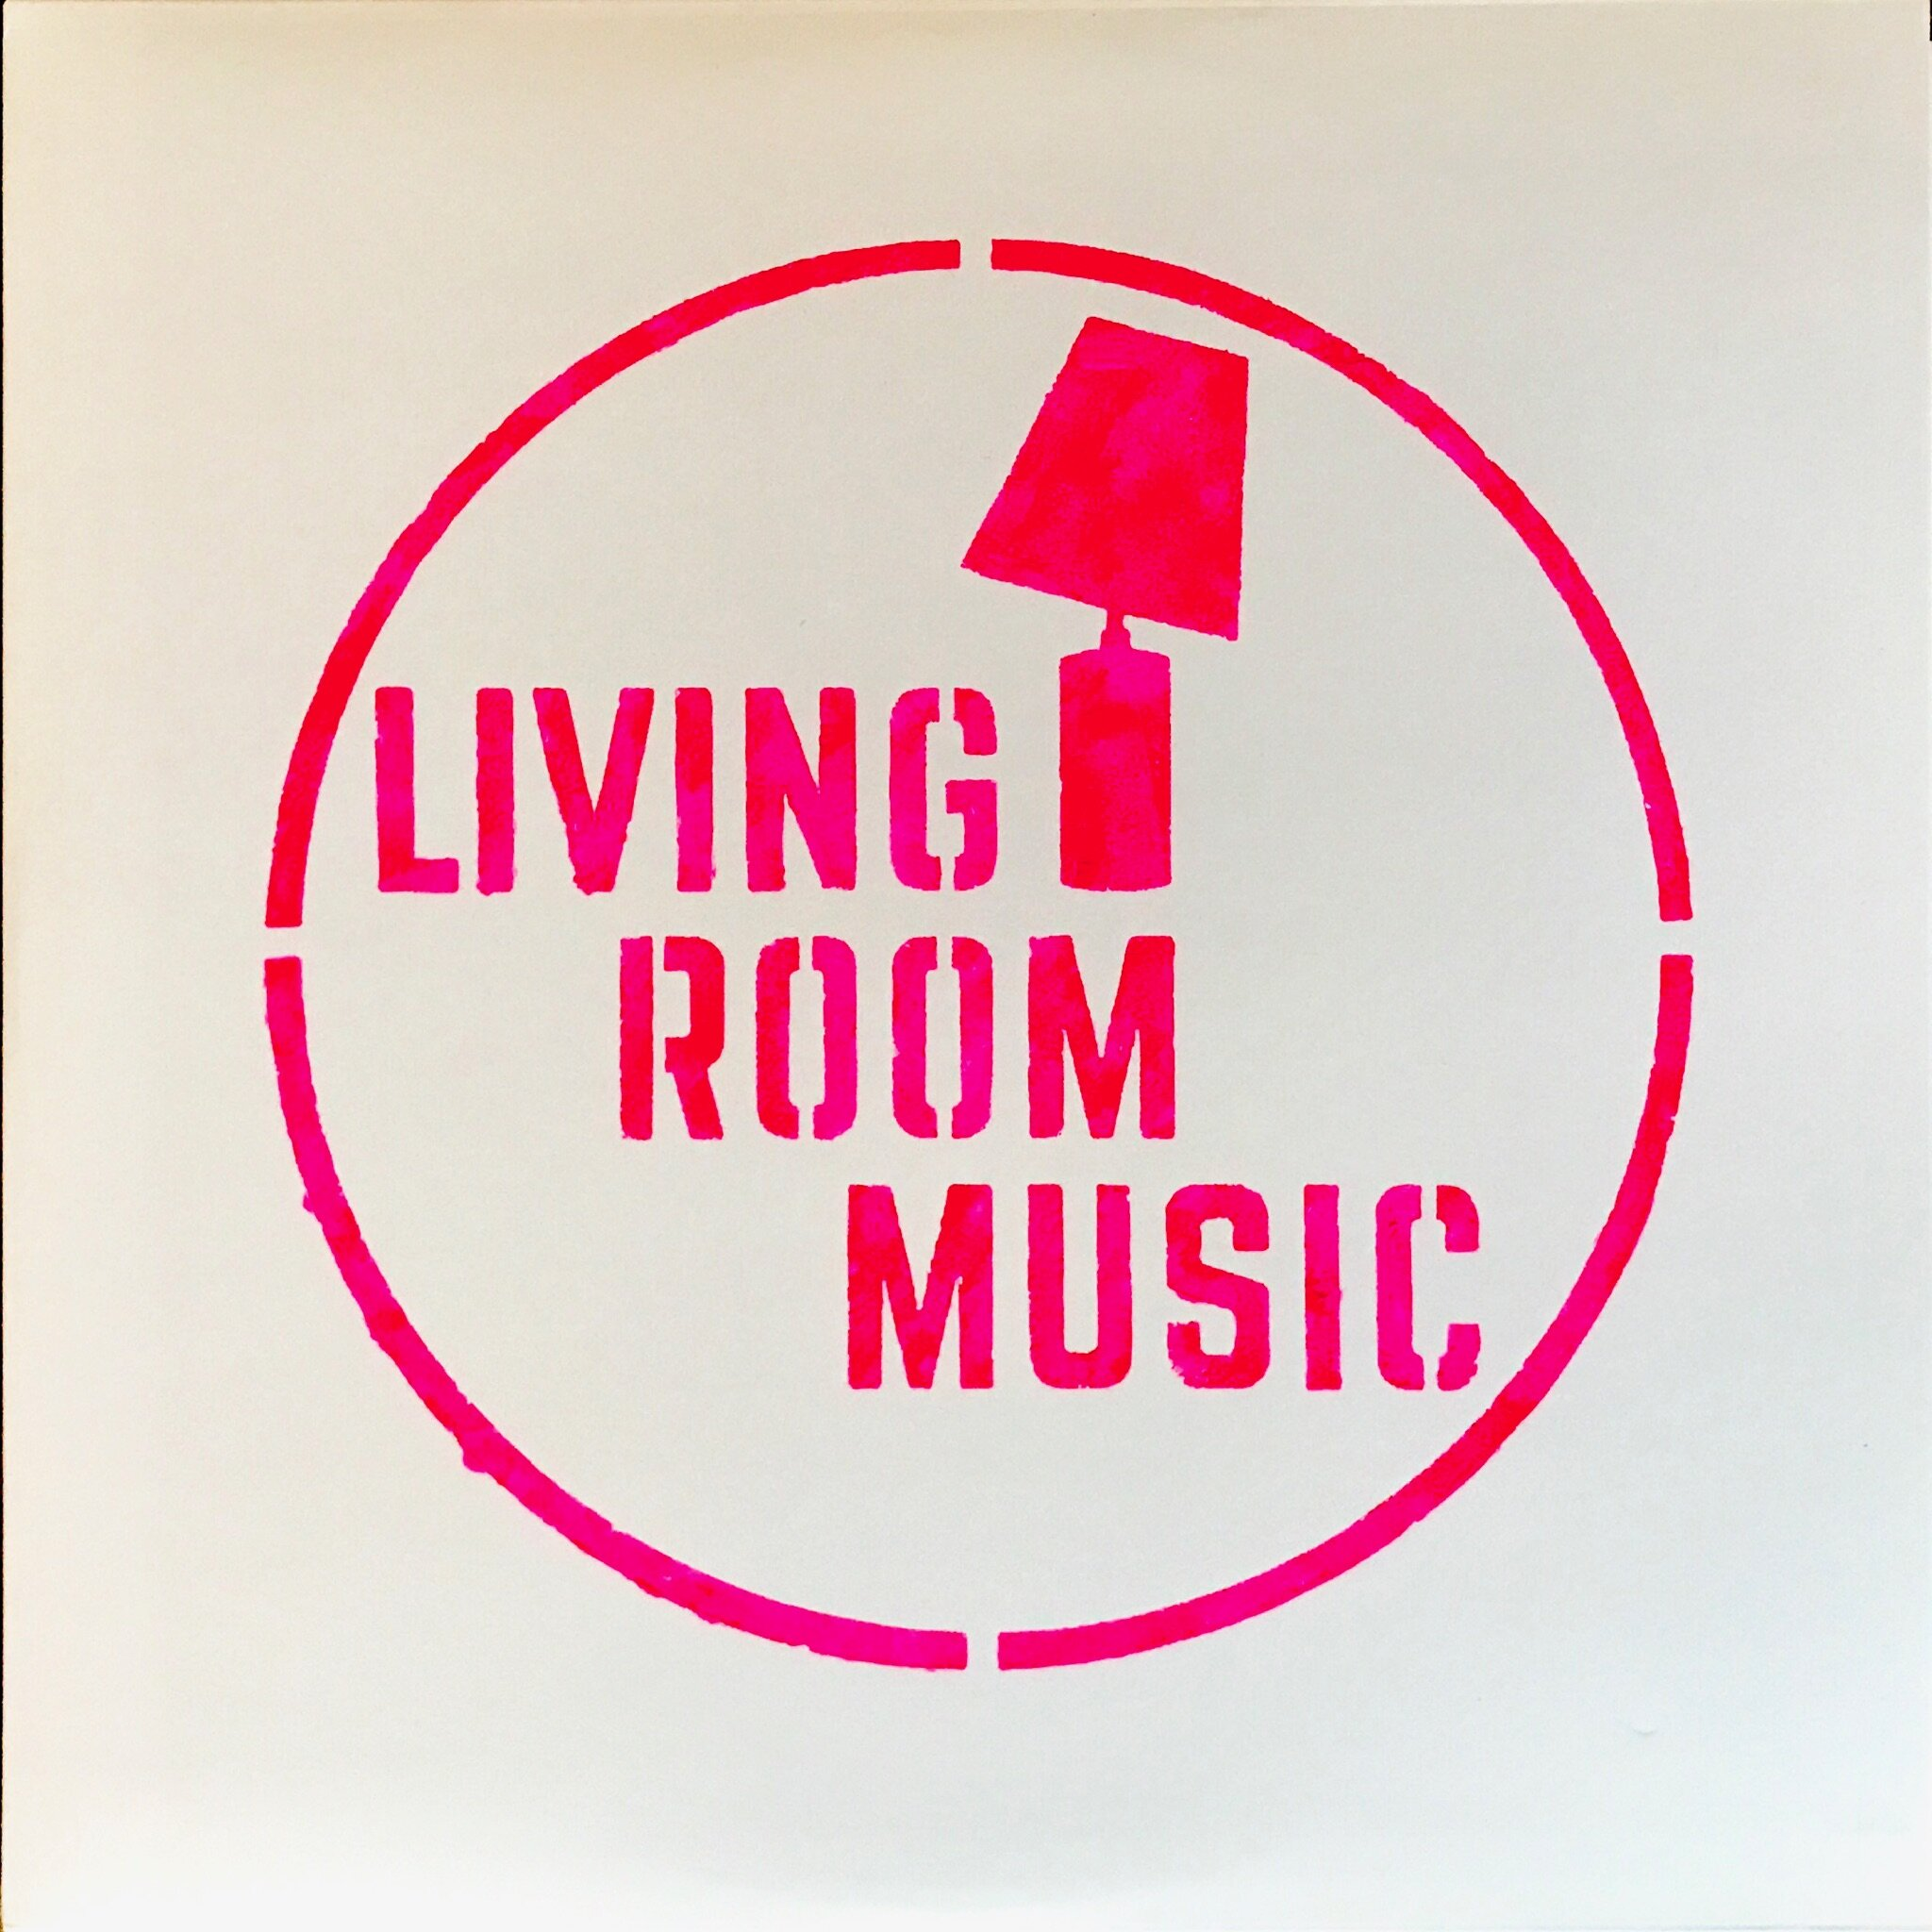 living room music volume 1.   music by robert honstein, dave molk, wally gunn, andrea mazzariello, and elliot cole.   one More revolution 002.   for sale  here .